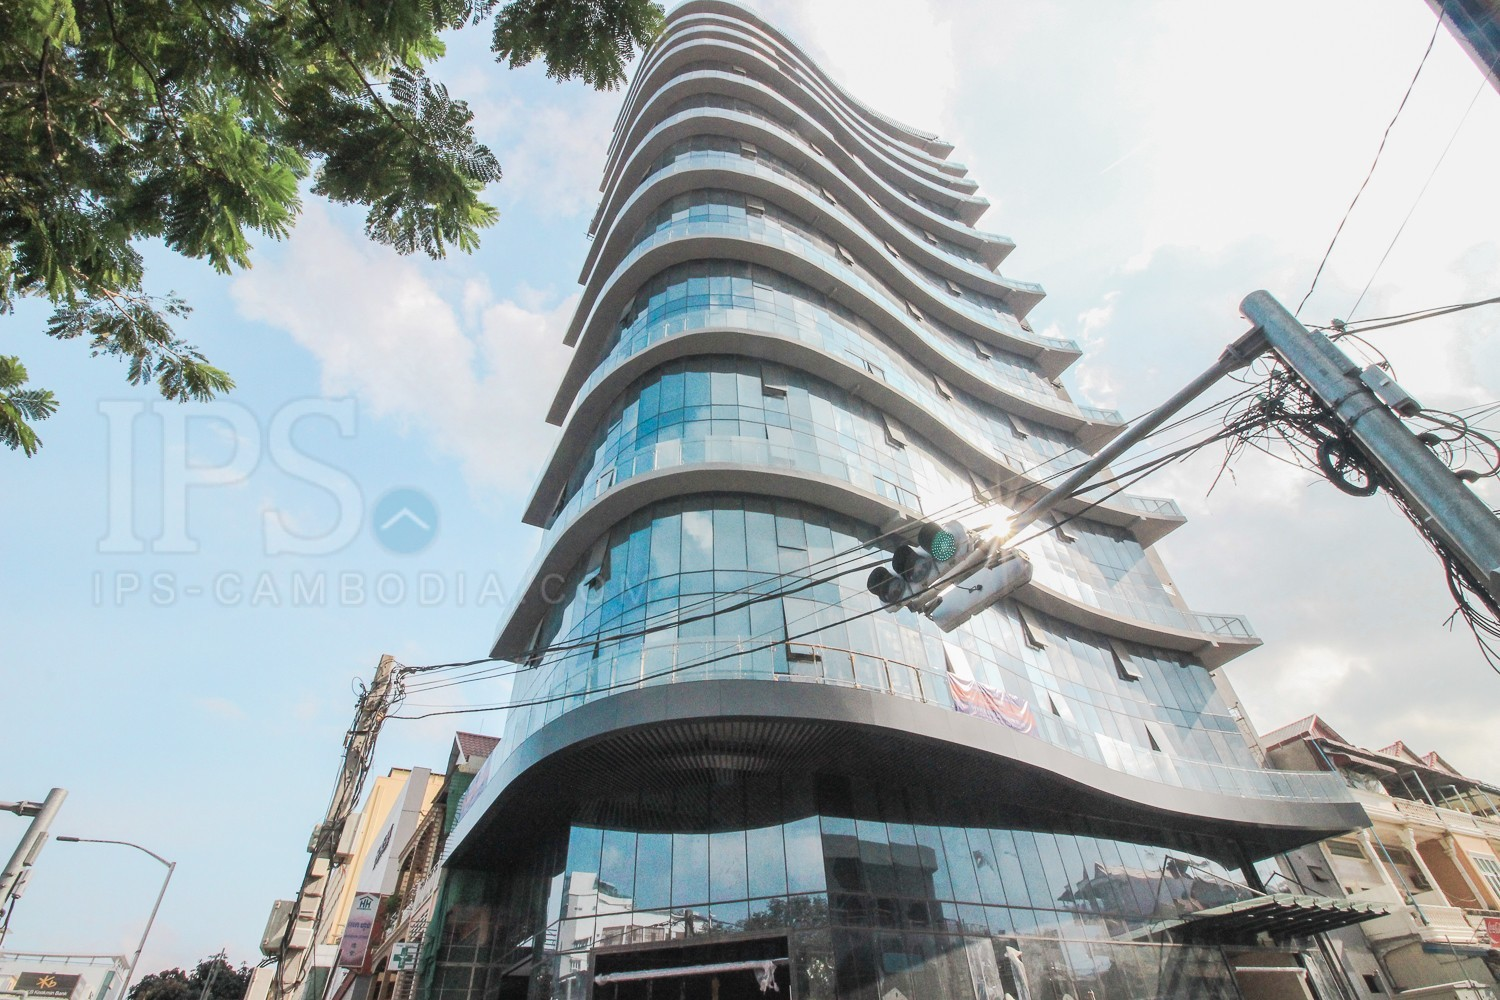 400 sq.m. Office Space For Rent - Tumnup Teuk, Phnom Penh